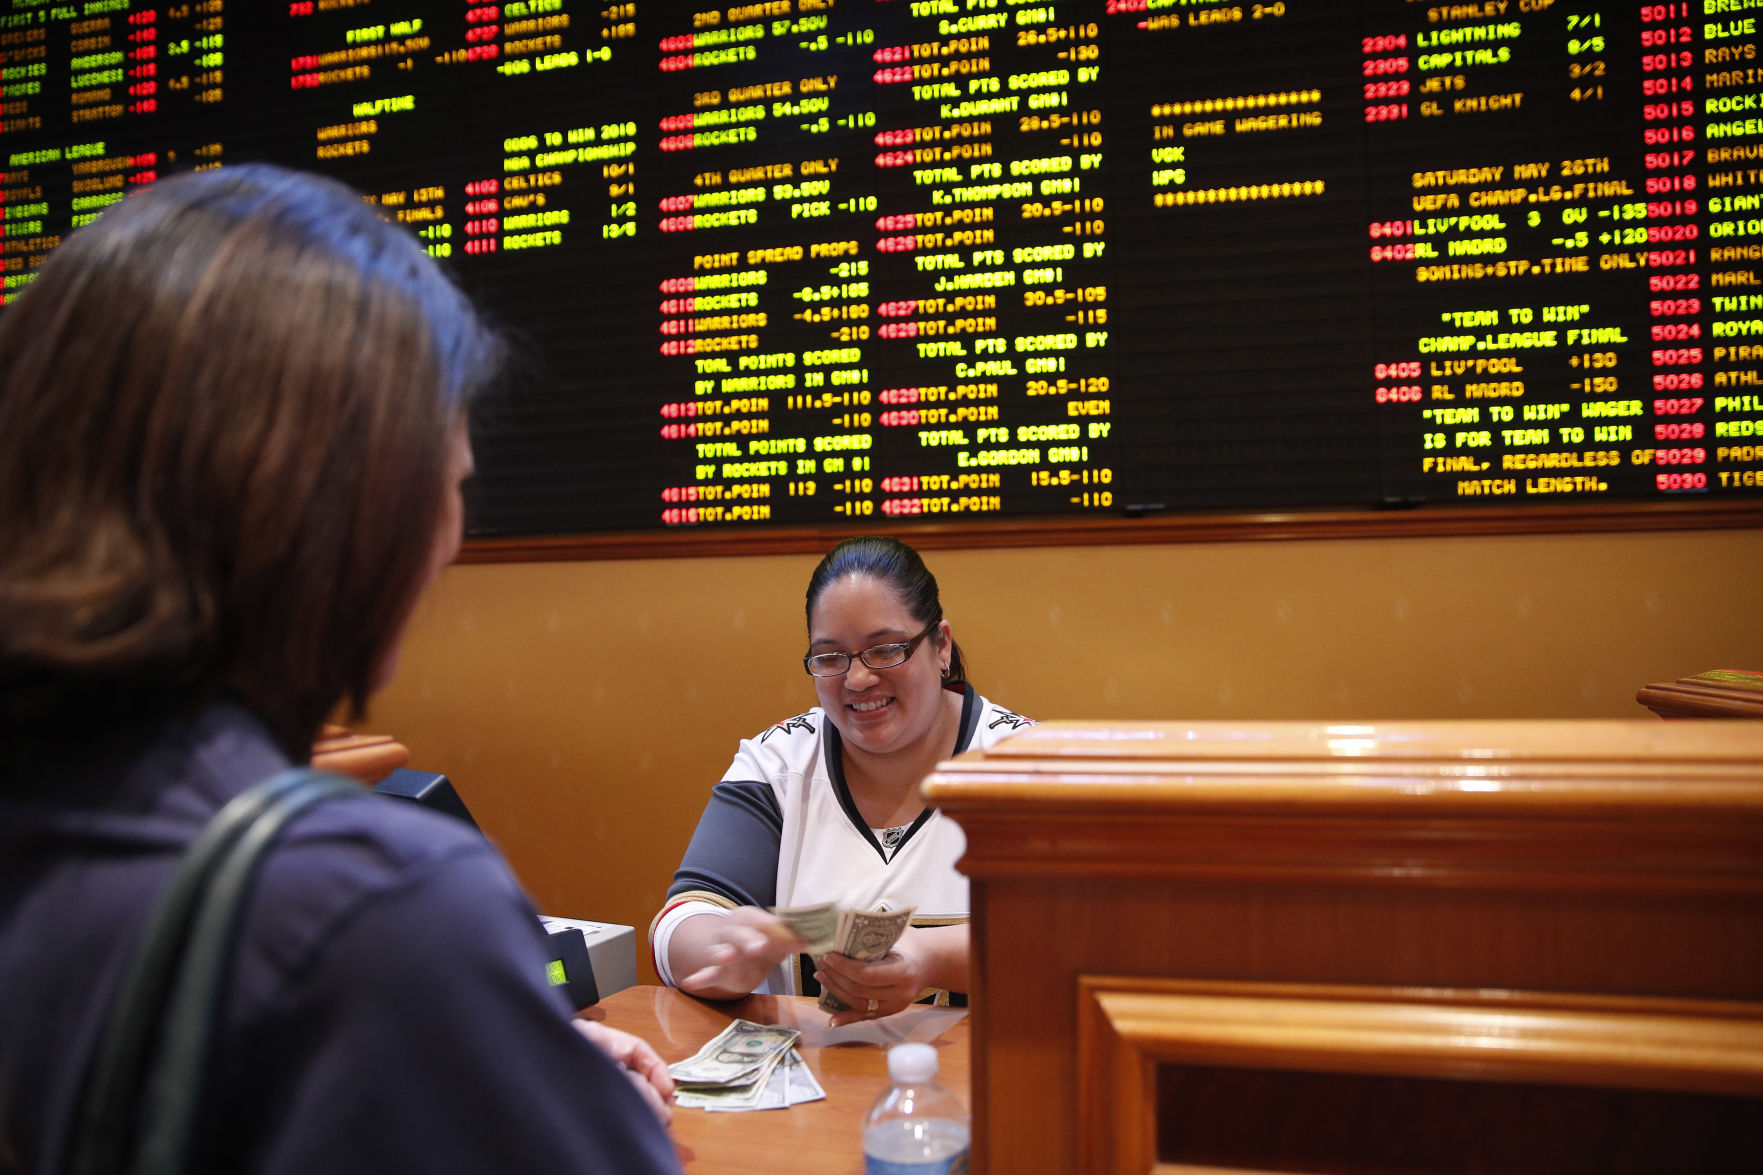 Sports Betting Asian Handicap Odds And Live Casino